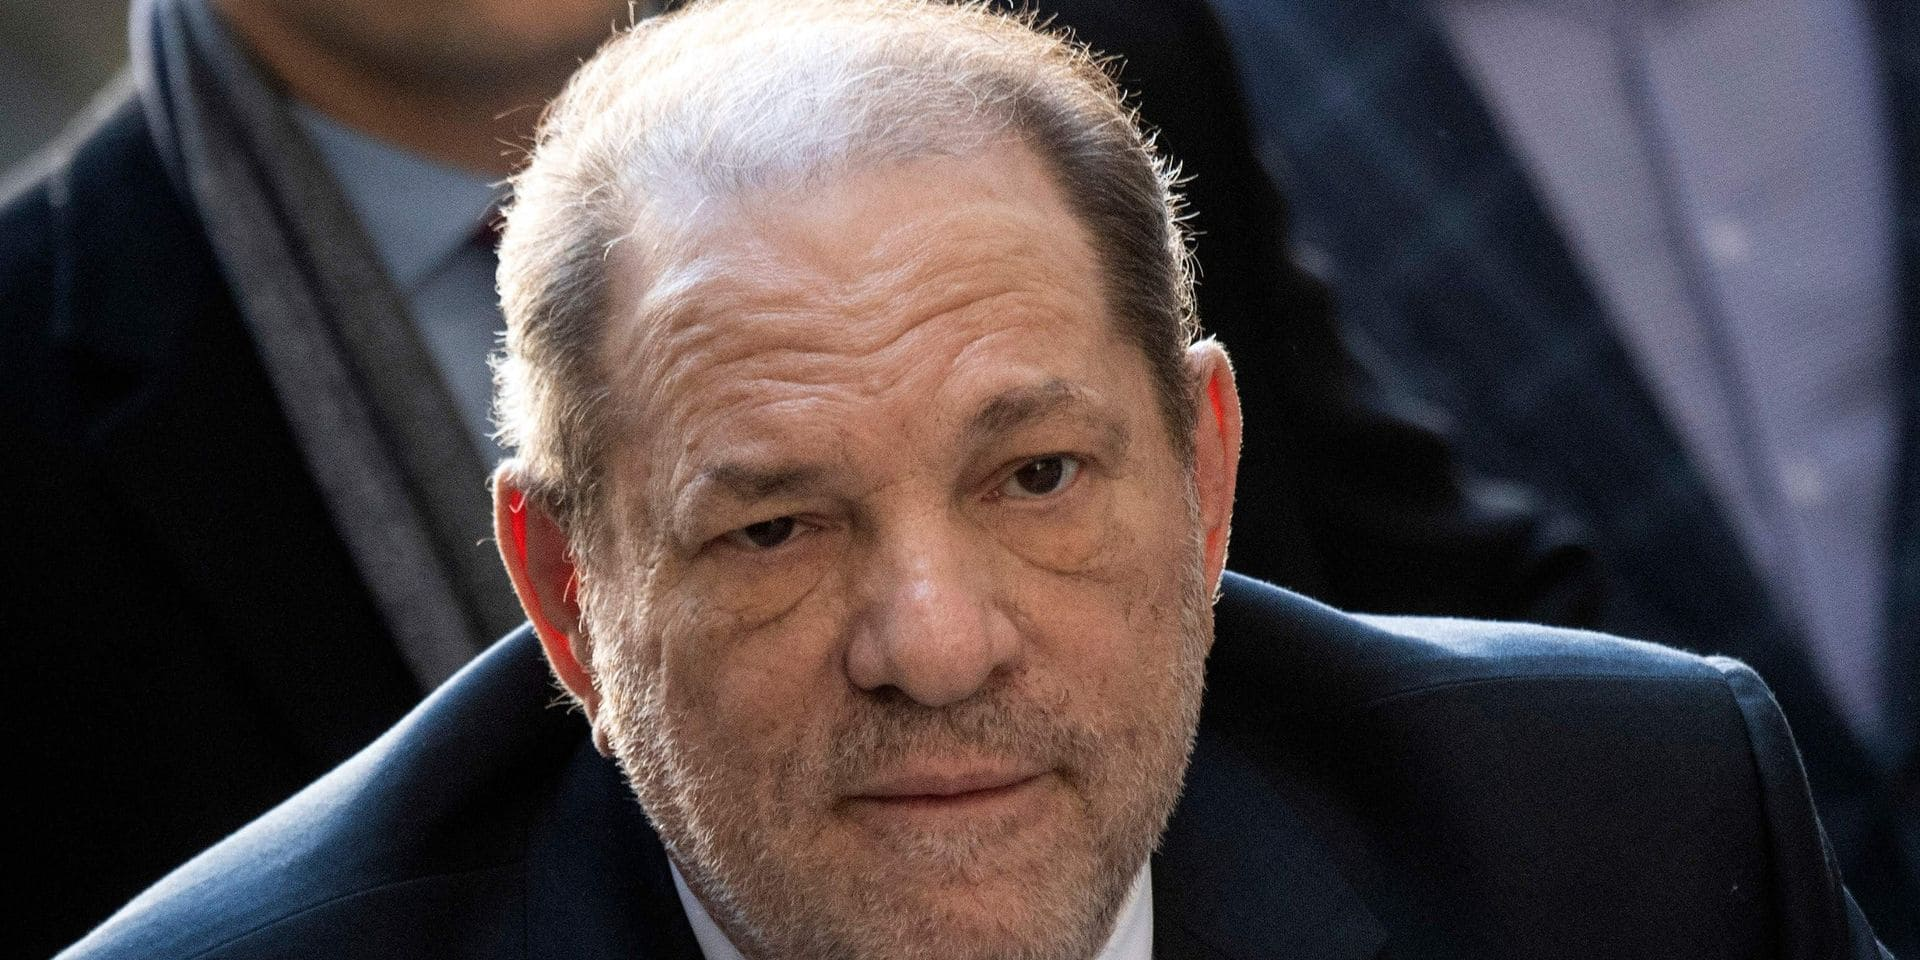 A Los Angeles, Harvey Weinstein continue à plaider non coupable